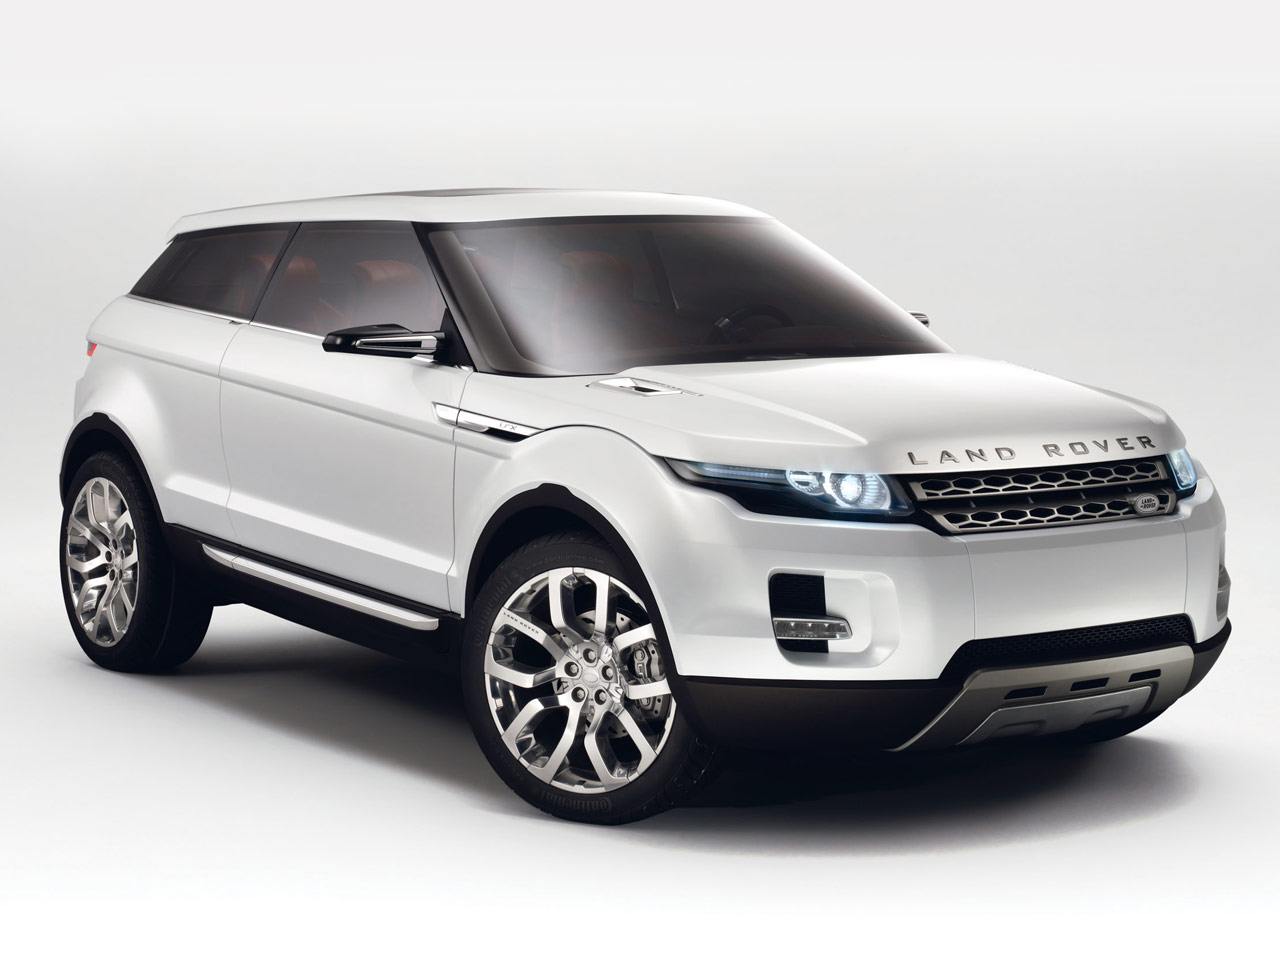 2011 land rover range rover evoque review cars news review. Black Bedroom Furniture Sets. Home Design Ideas